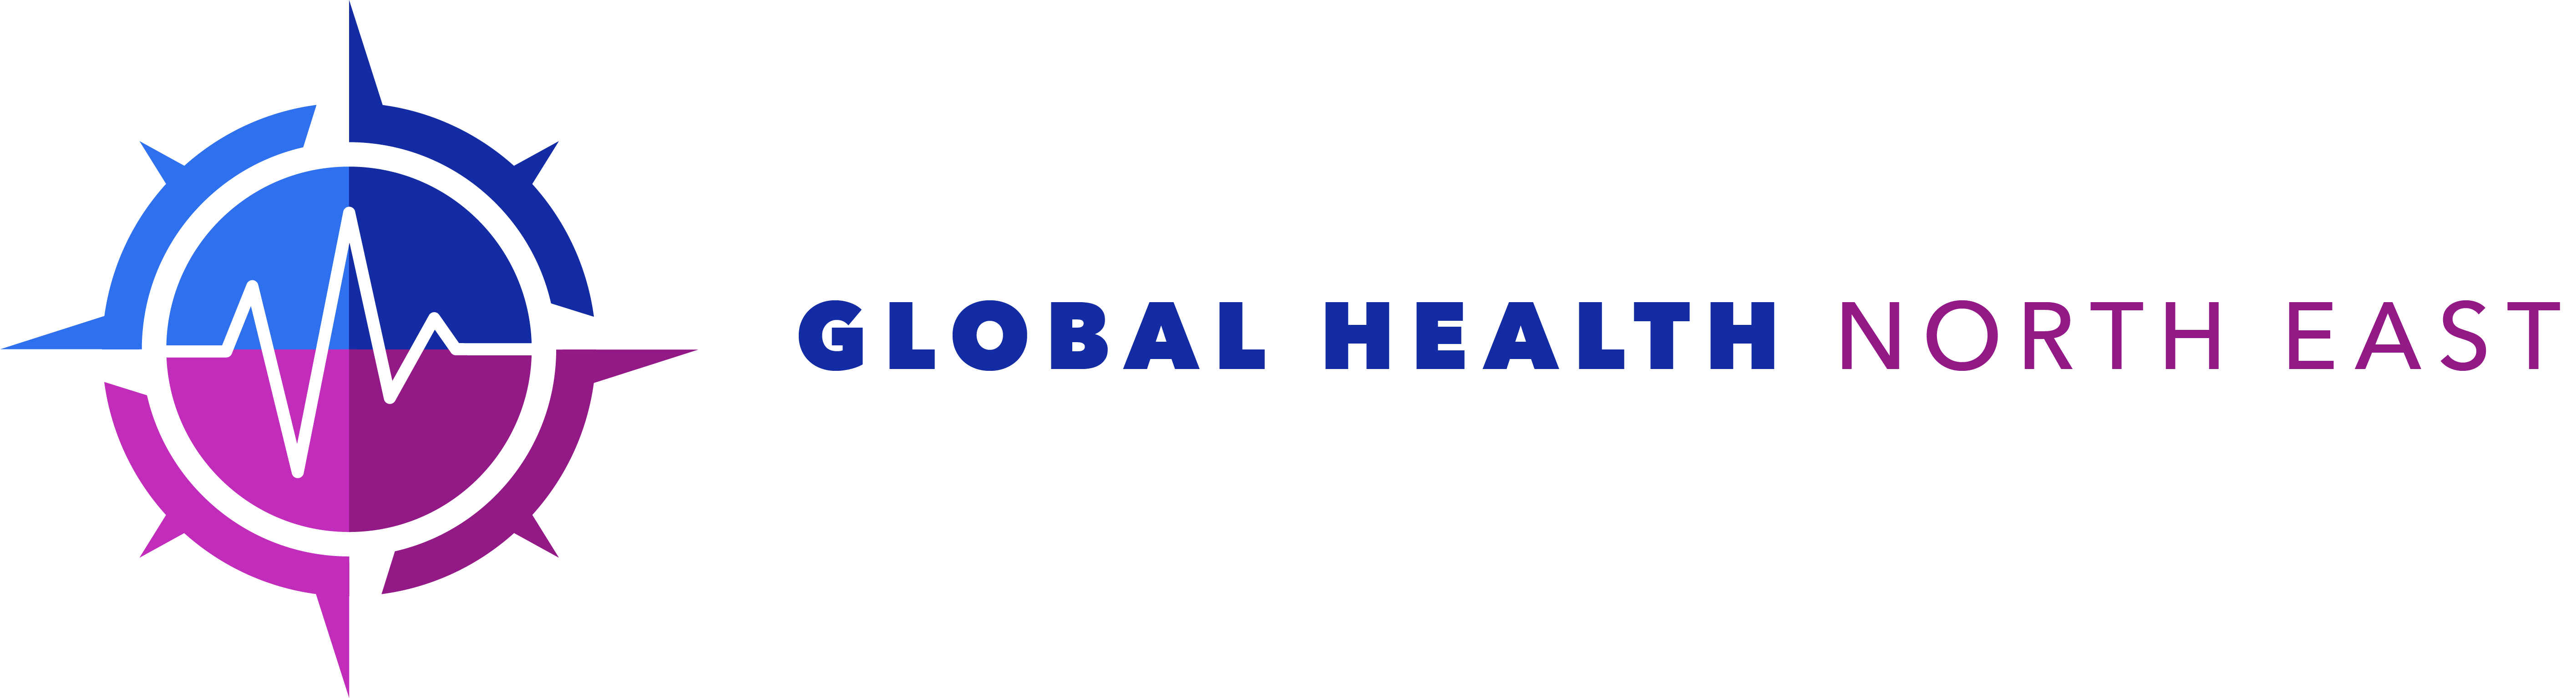 Global Health North East